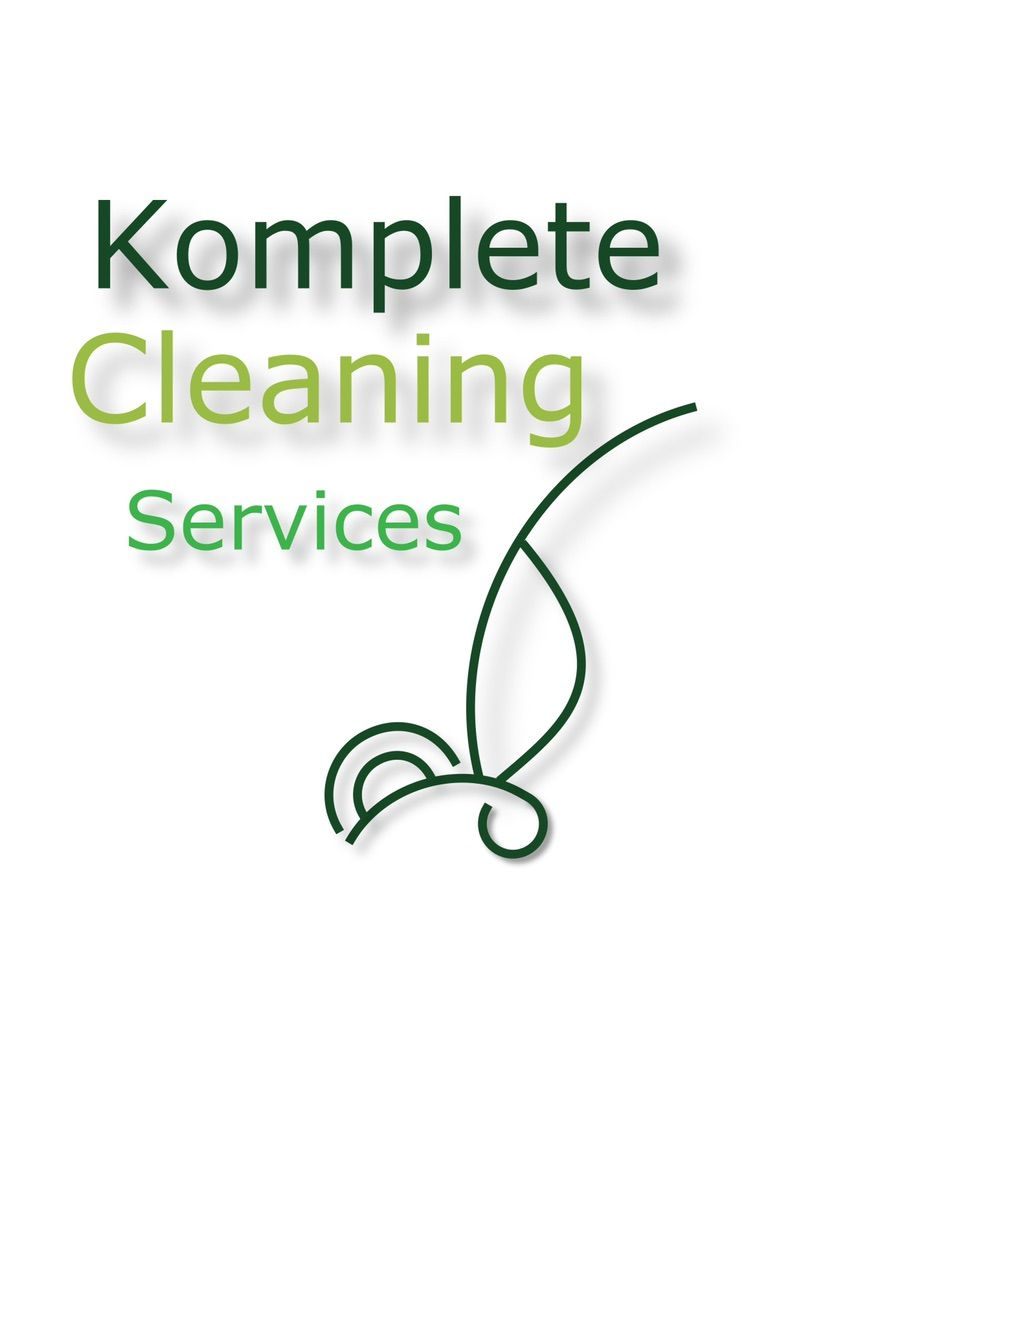 Komplete Cleaning Services